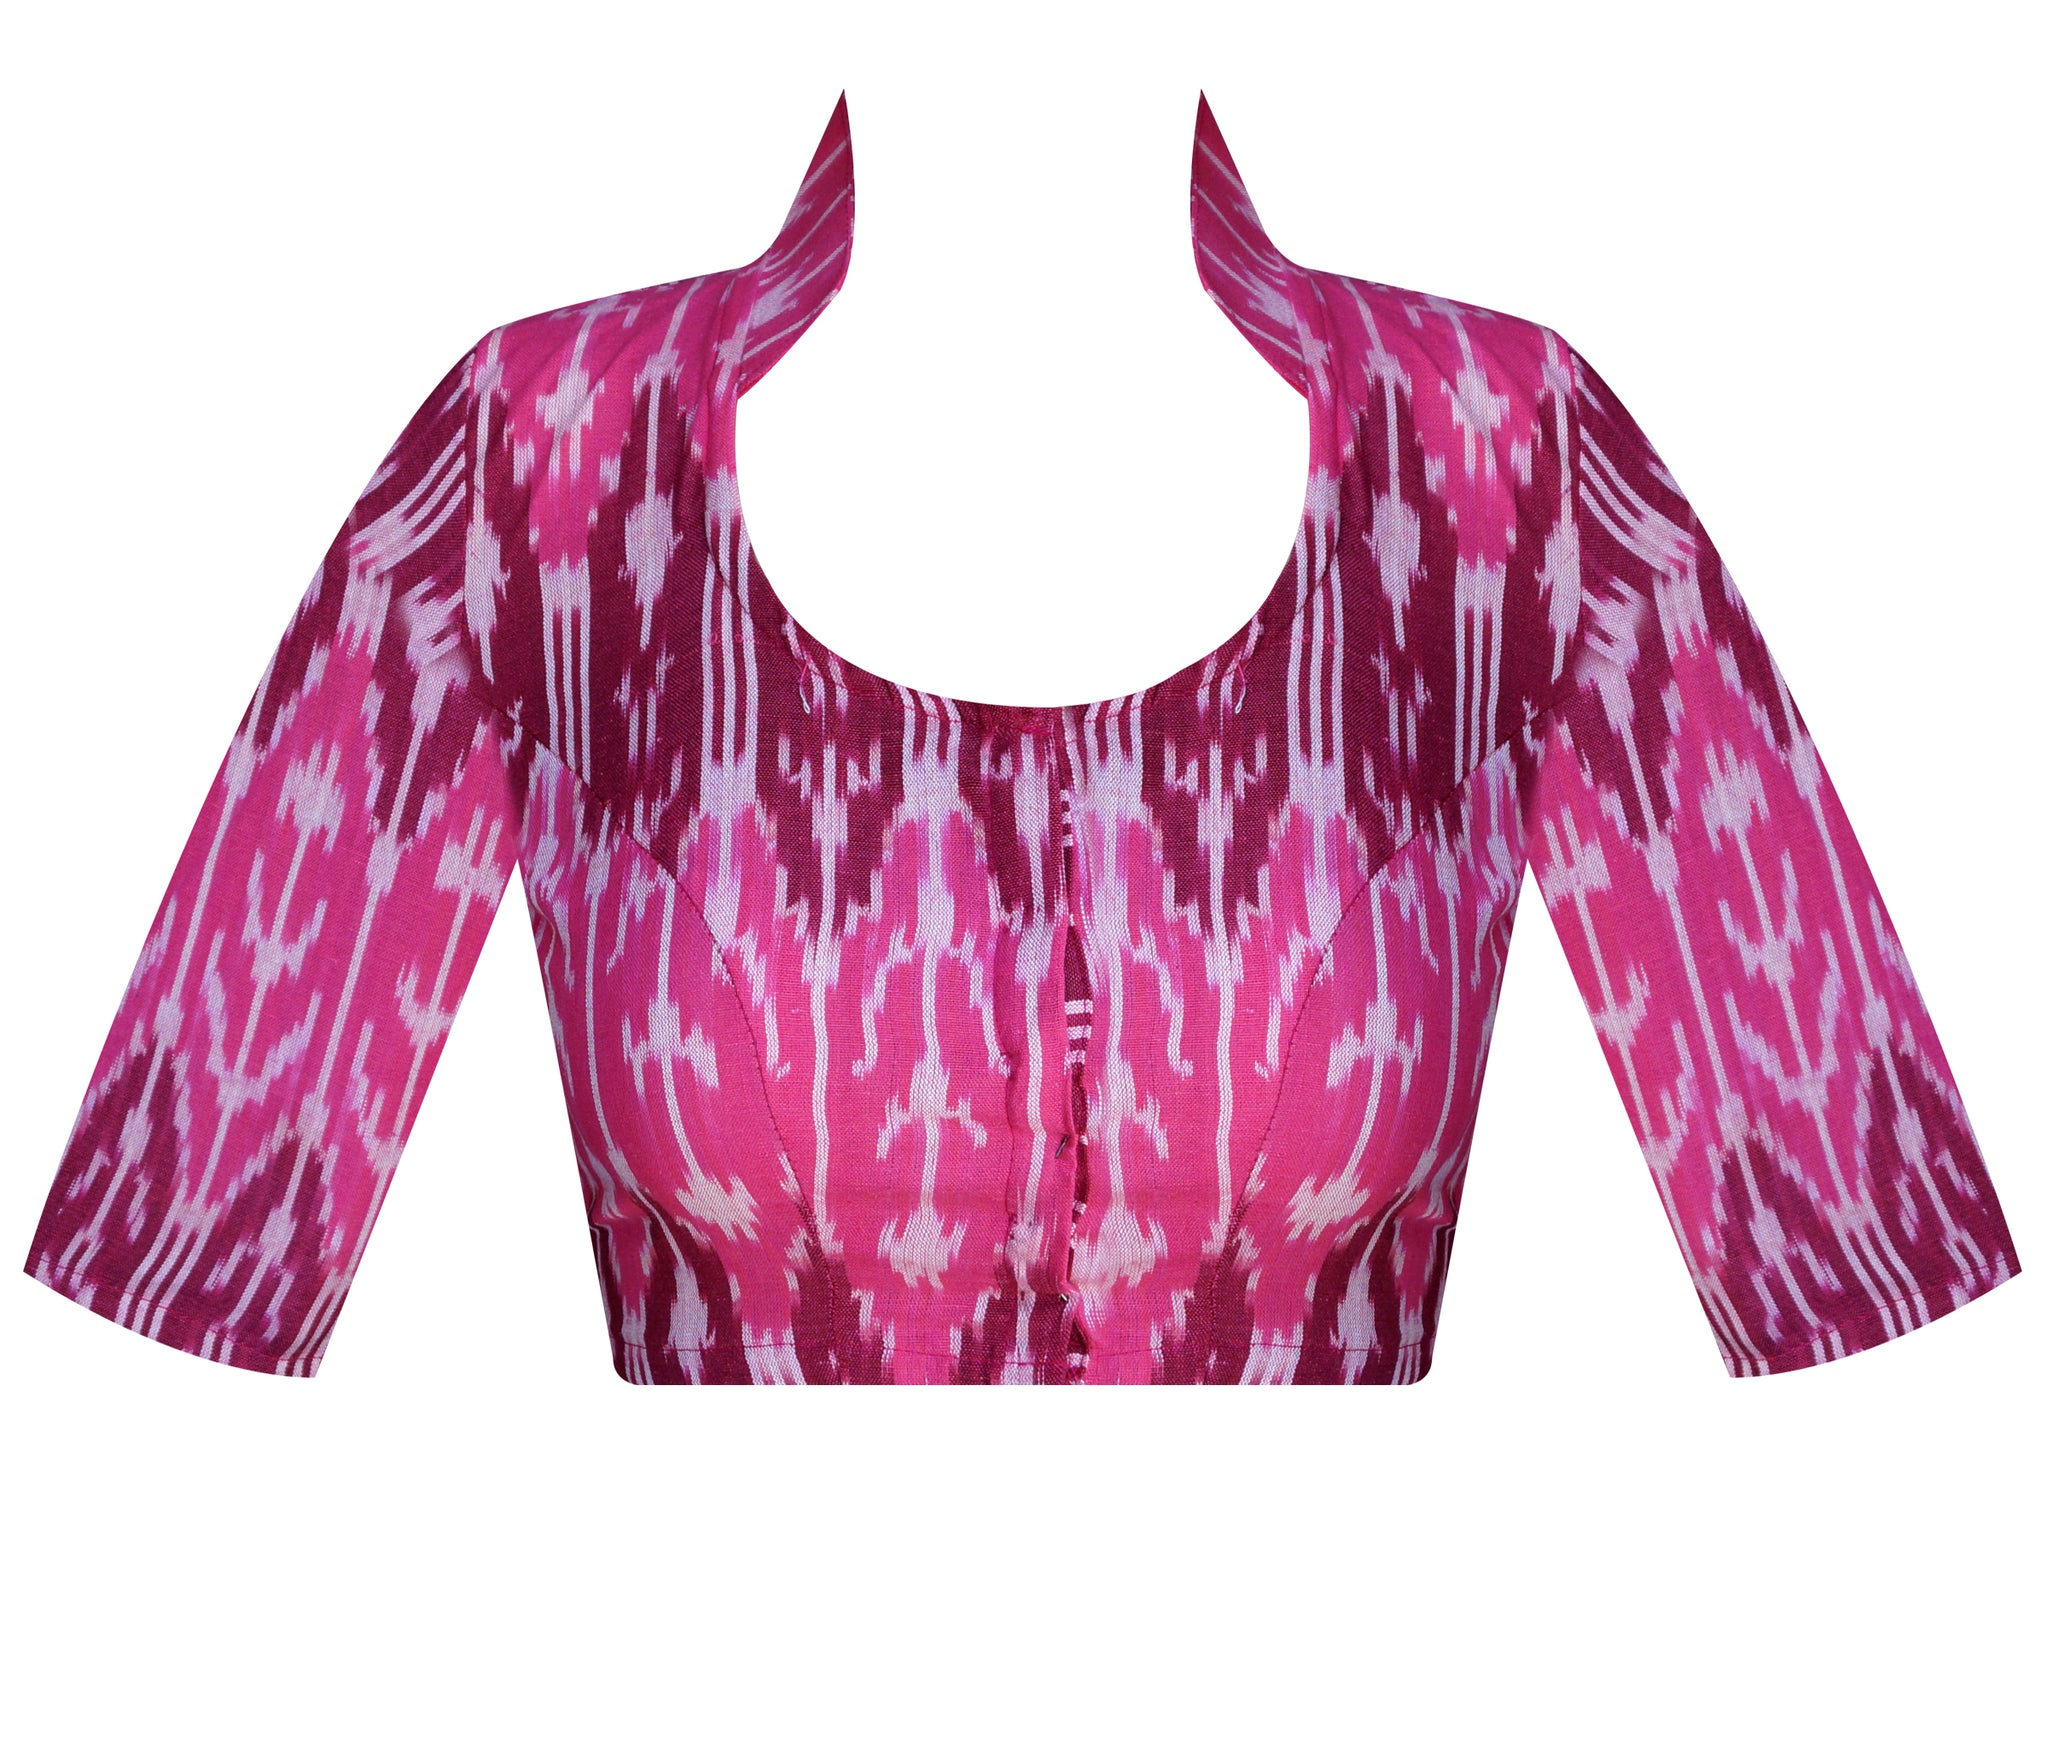 d38c9c548ea48 Collar Neck Ikkat Elbow Sleeves Readymade Blouse - Master Weaver Ethnics  India